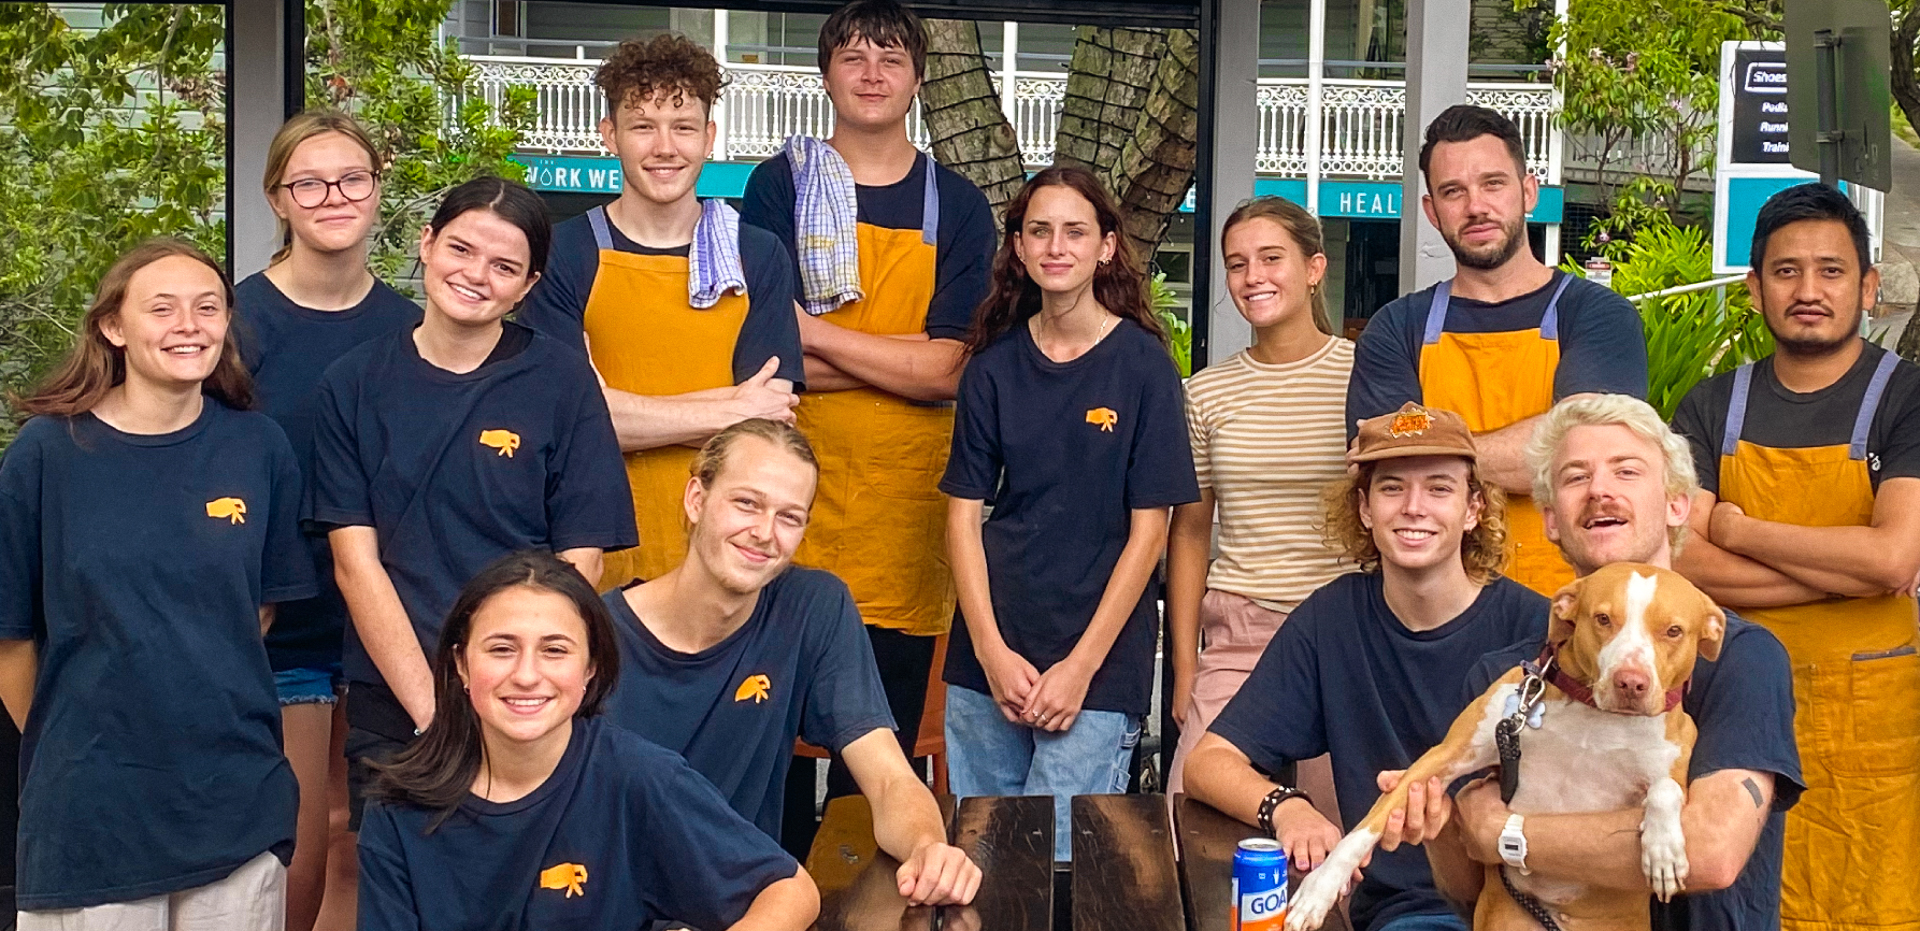 The remy's front of house & kitchen staff, together in the front courtyard